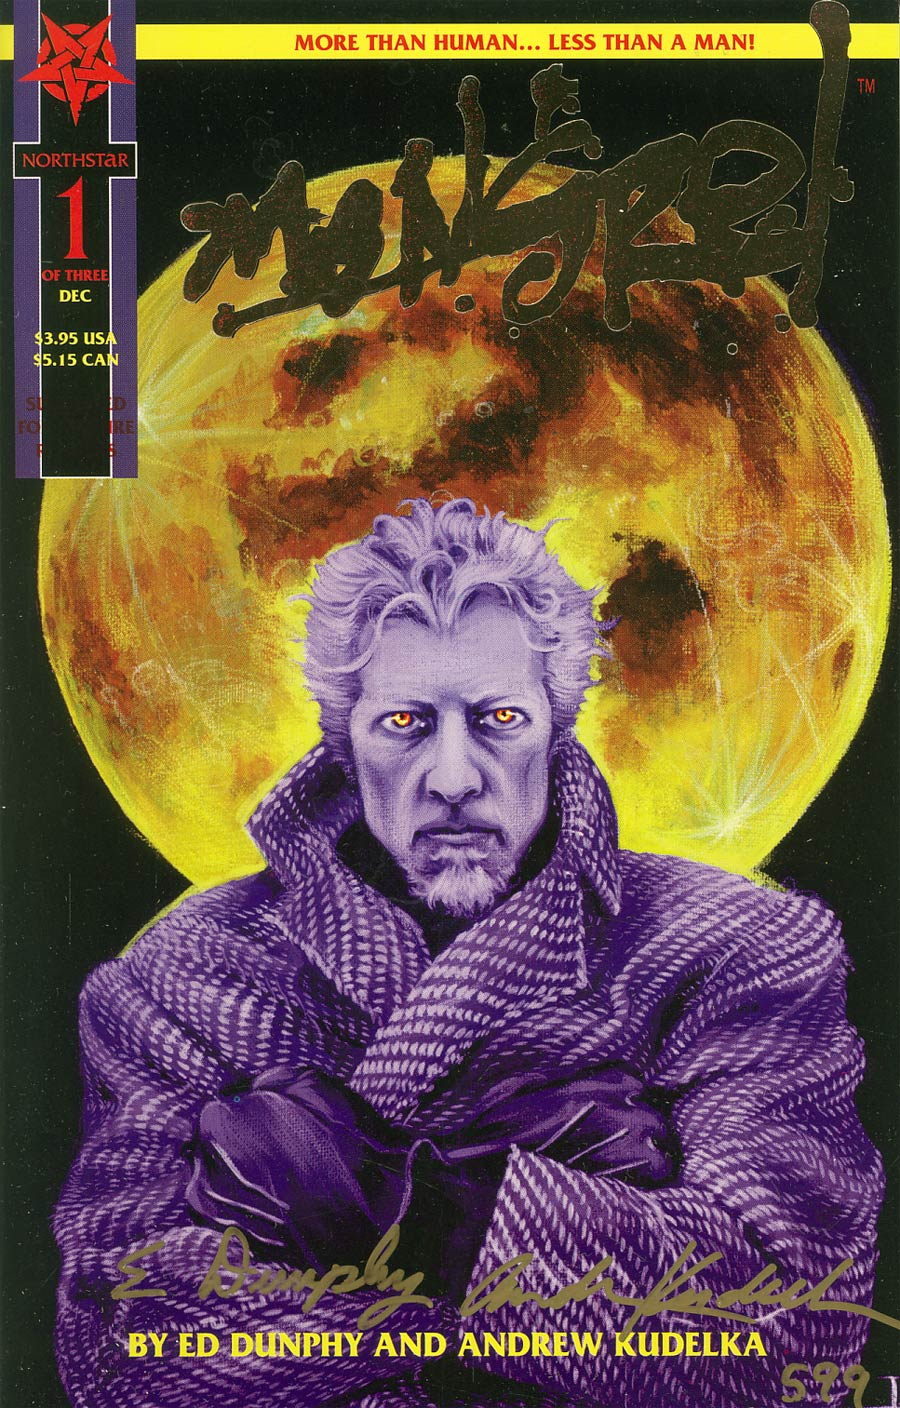 Mongrel #1 Cover D Gold Edition Without Registration Card